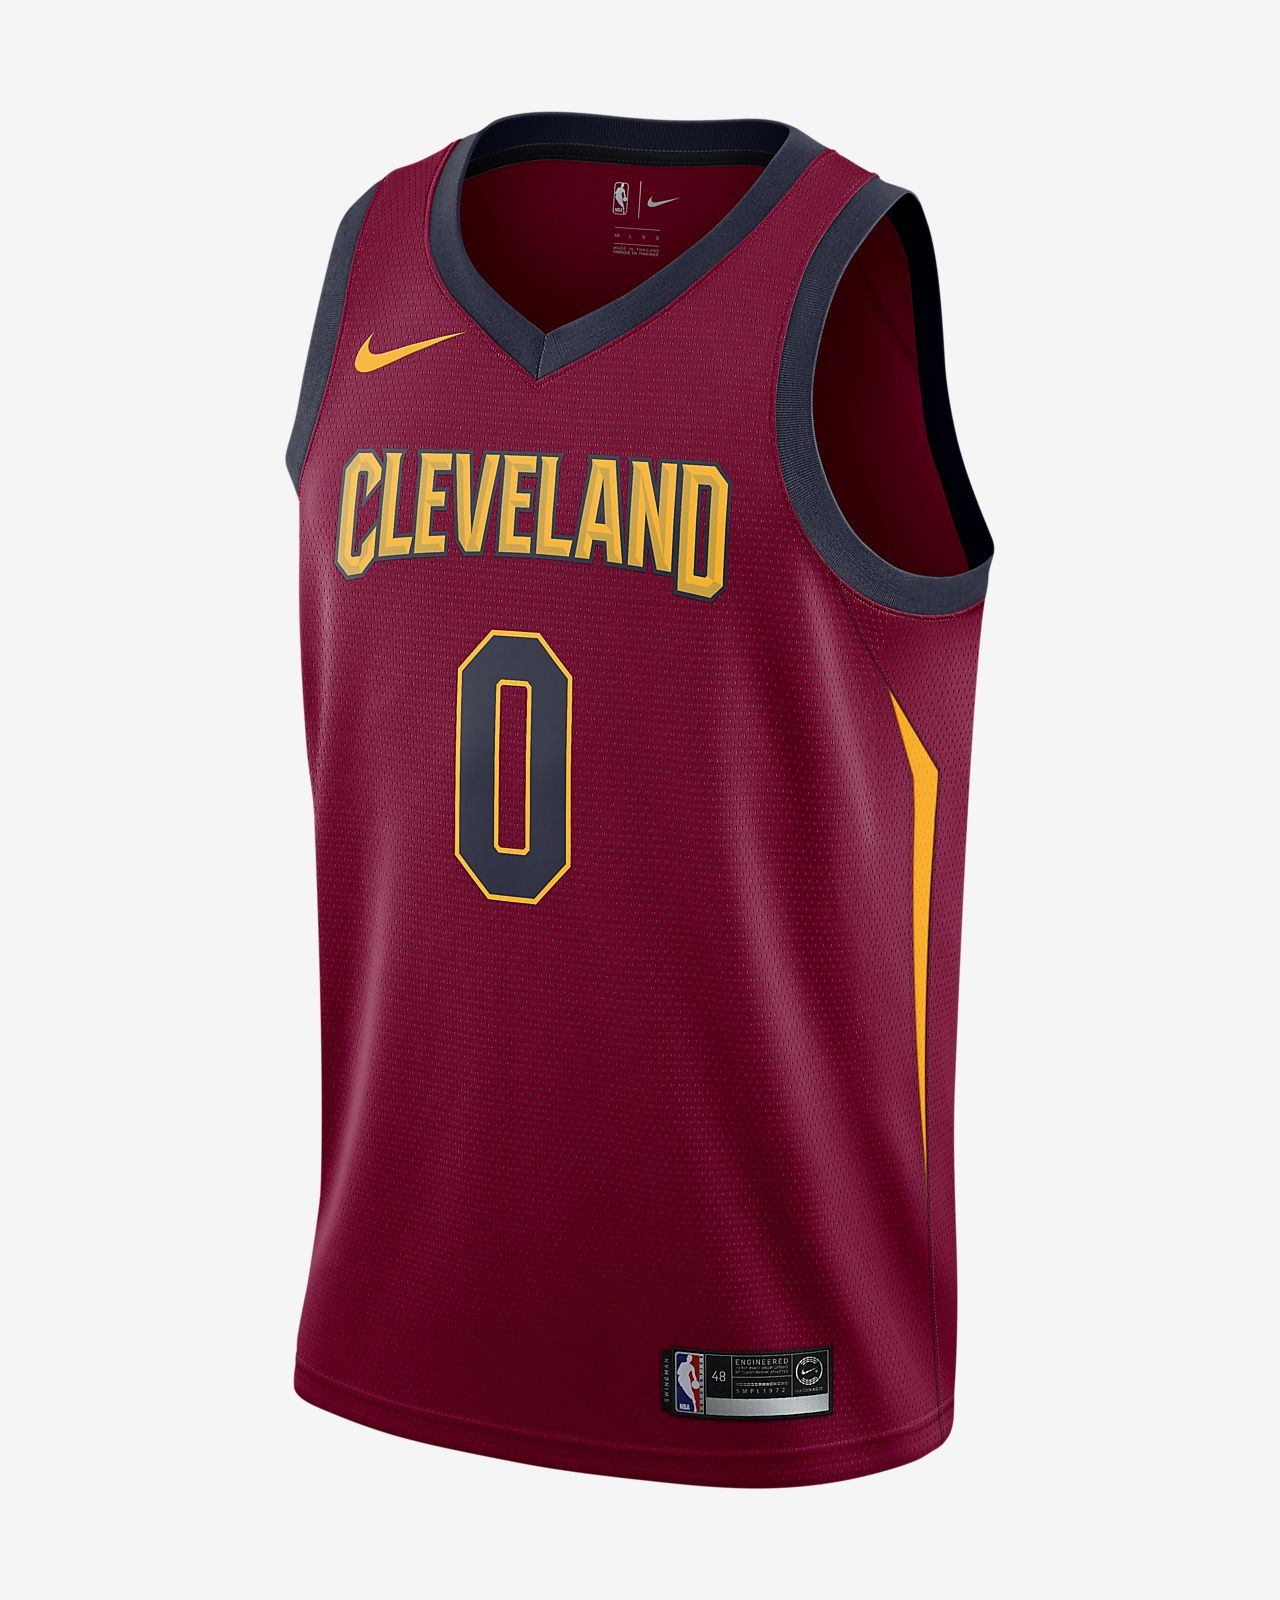 Kevin cleveland Cavaliers Love Icon Nike Swingman Edition Jersey A8nHFqAw